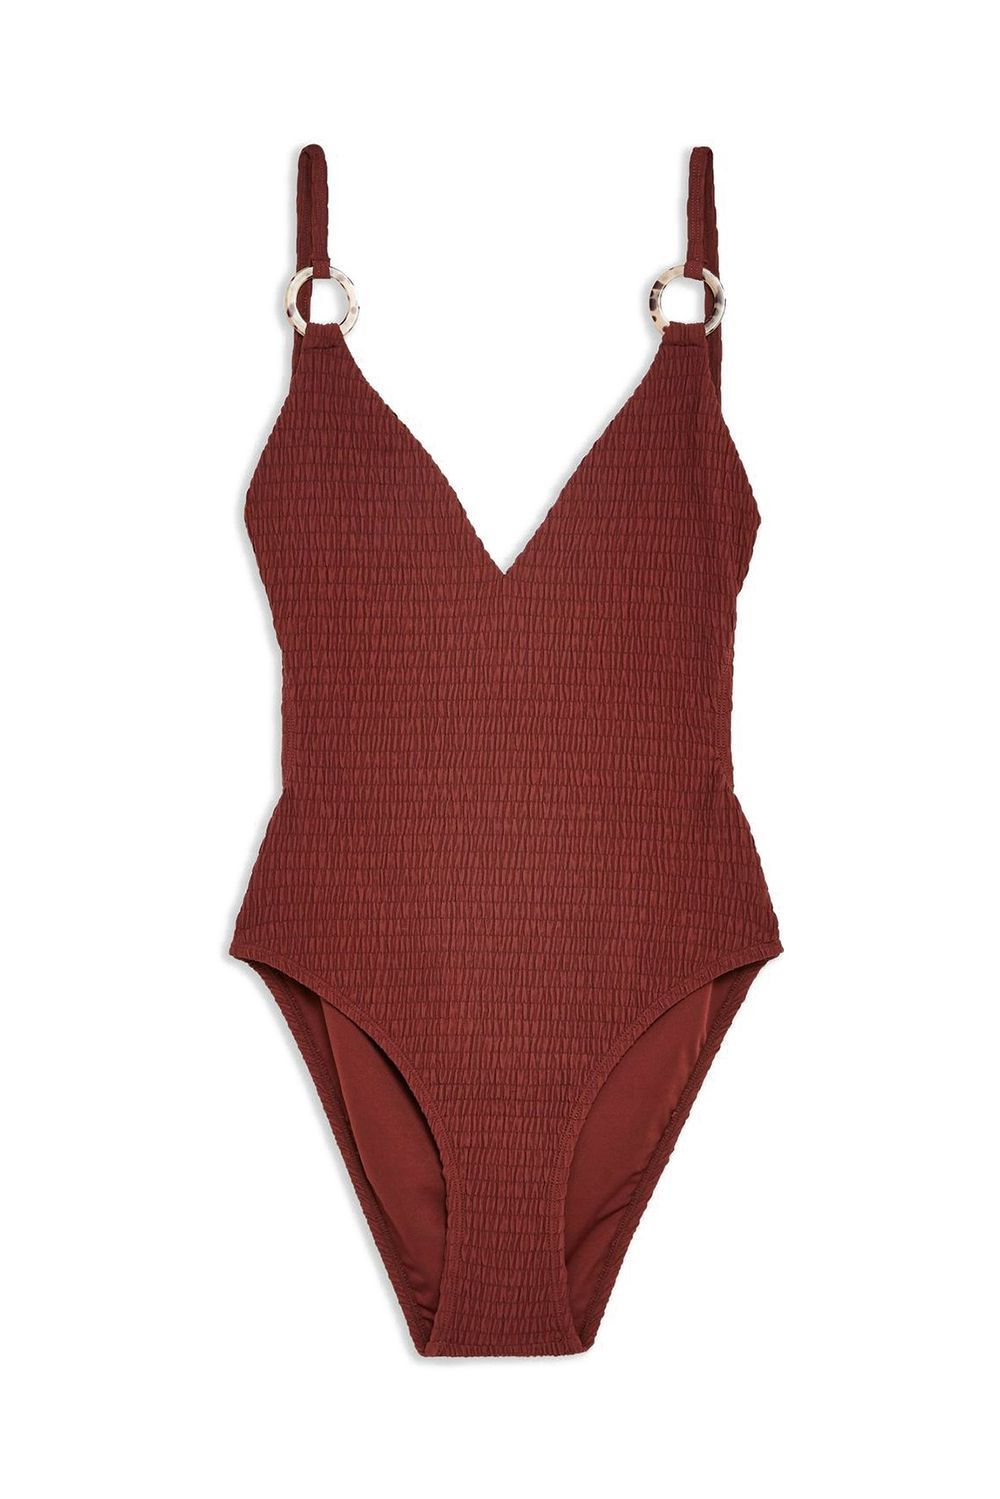 Best Shirred One-Piece Burgundy Shirred Ring Swimsuit Topshop topshop.com $52.00 SHOP IT This affordable swimsuit has cutouts all over and a ring detail on the straps for that not-too-simple look. You'll notice the one piece isn't completely smooth either because it's made with a shirred material.